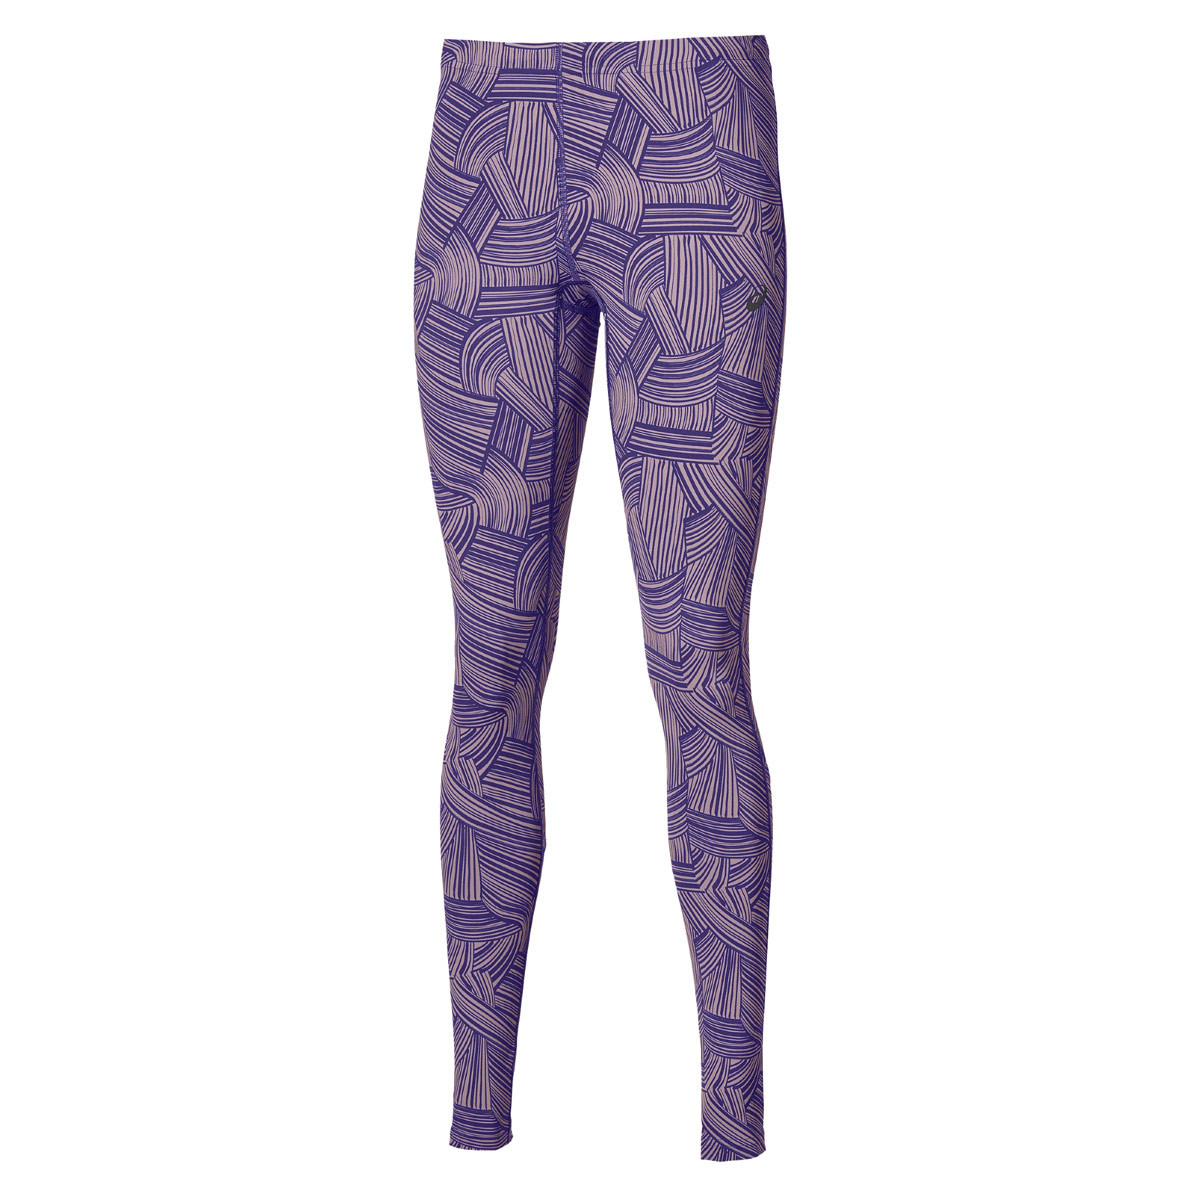 4111f3f19caa ASICS Graphic Tight - Running trousers for Women - Purple